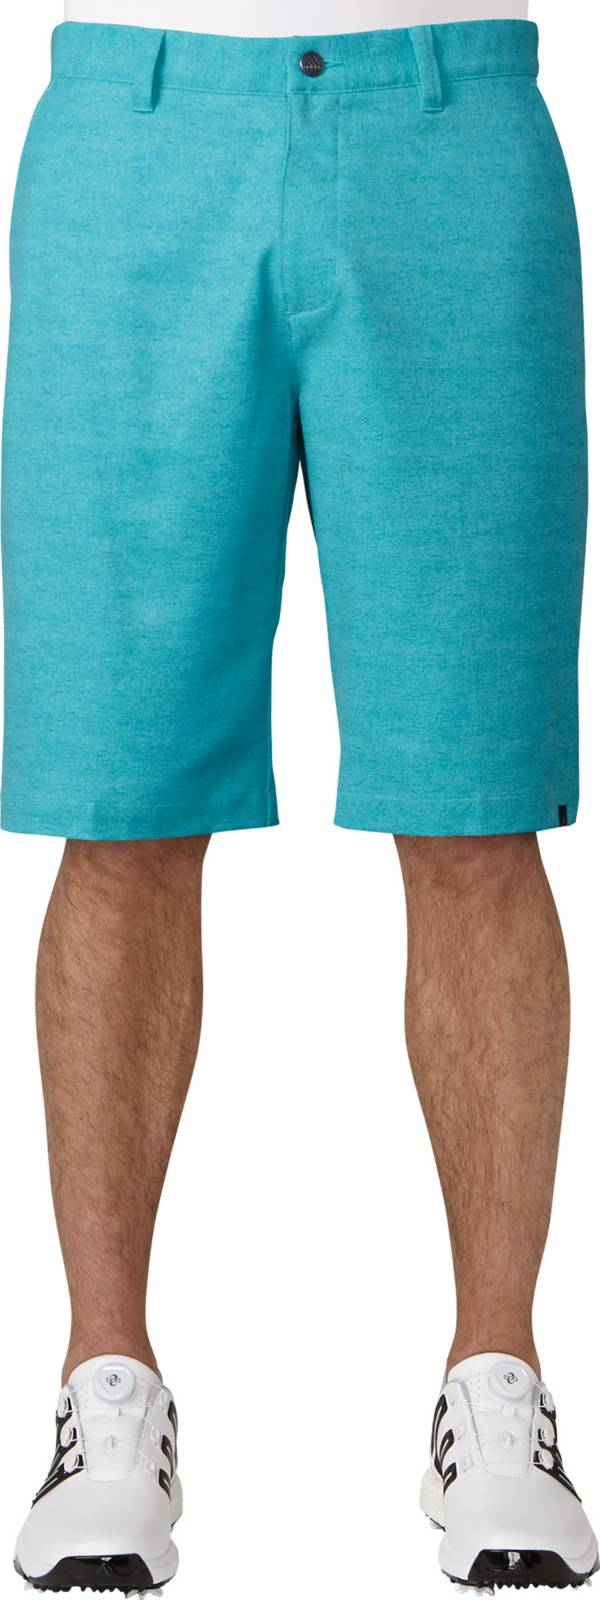 adidas Ultimate365 Heather Shorts product image